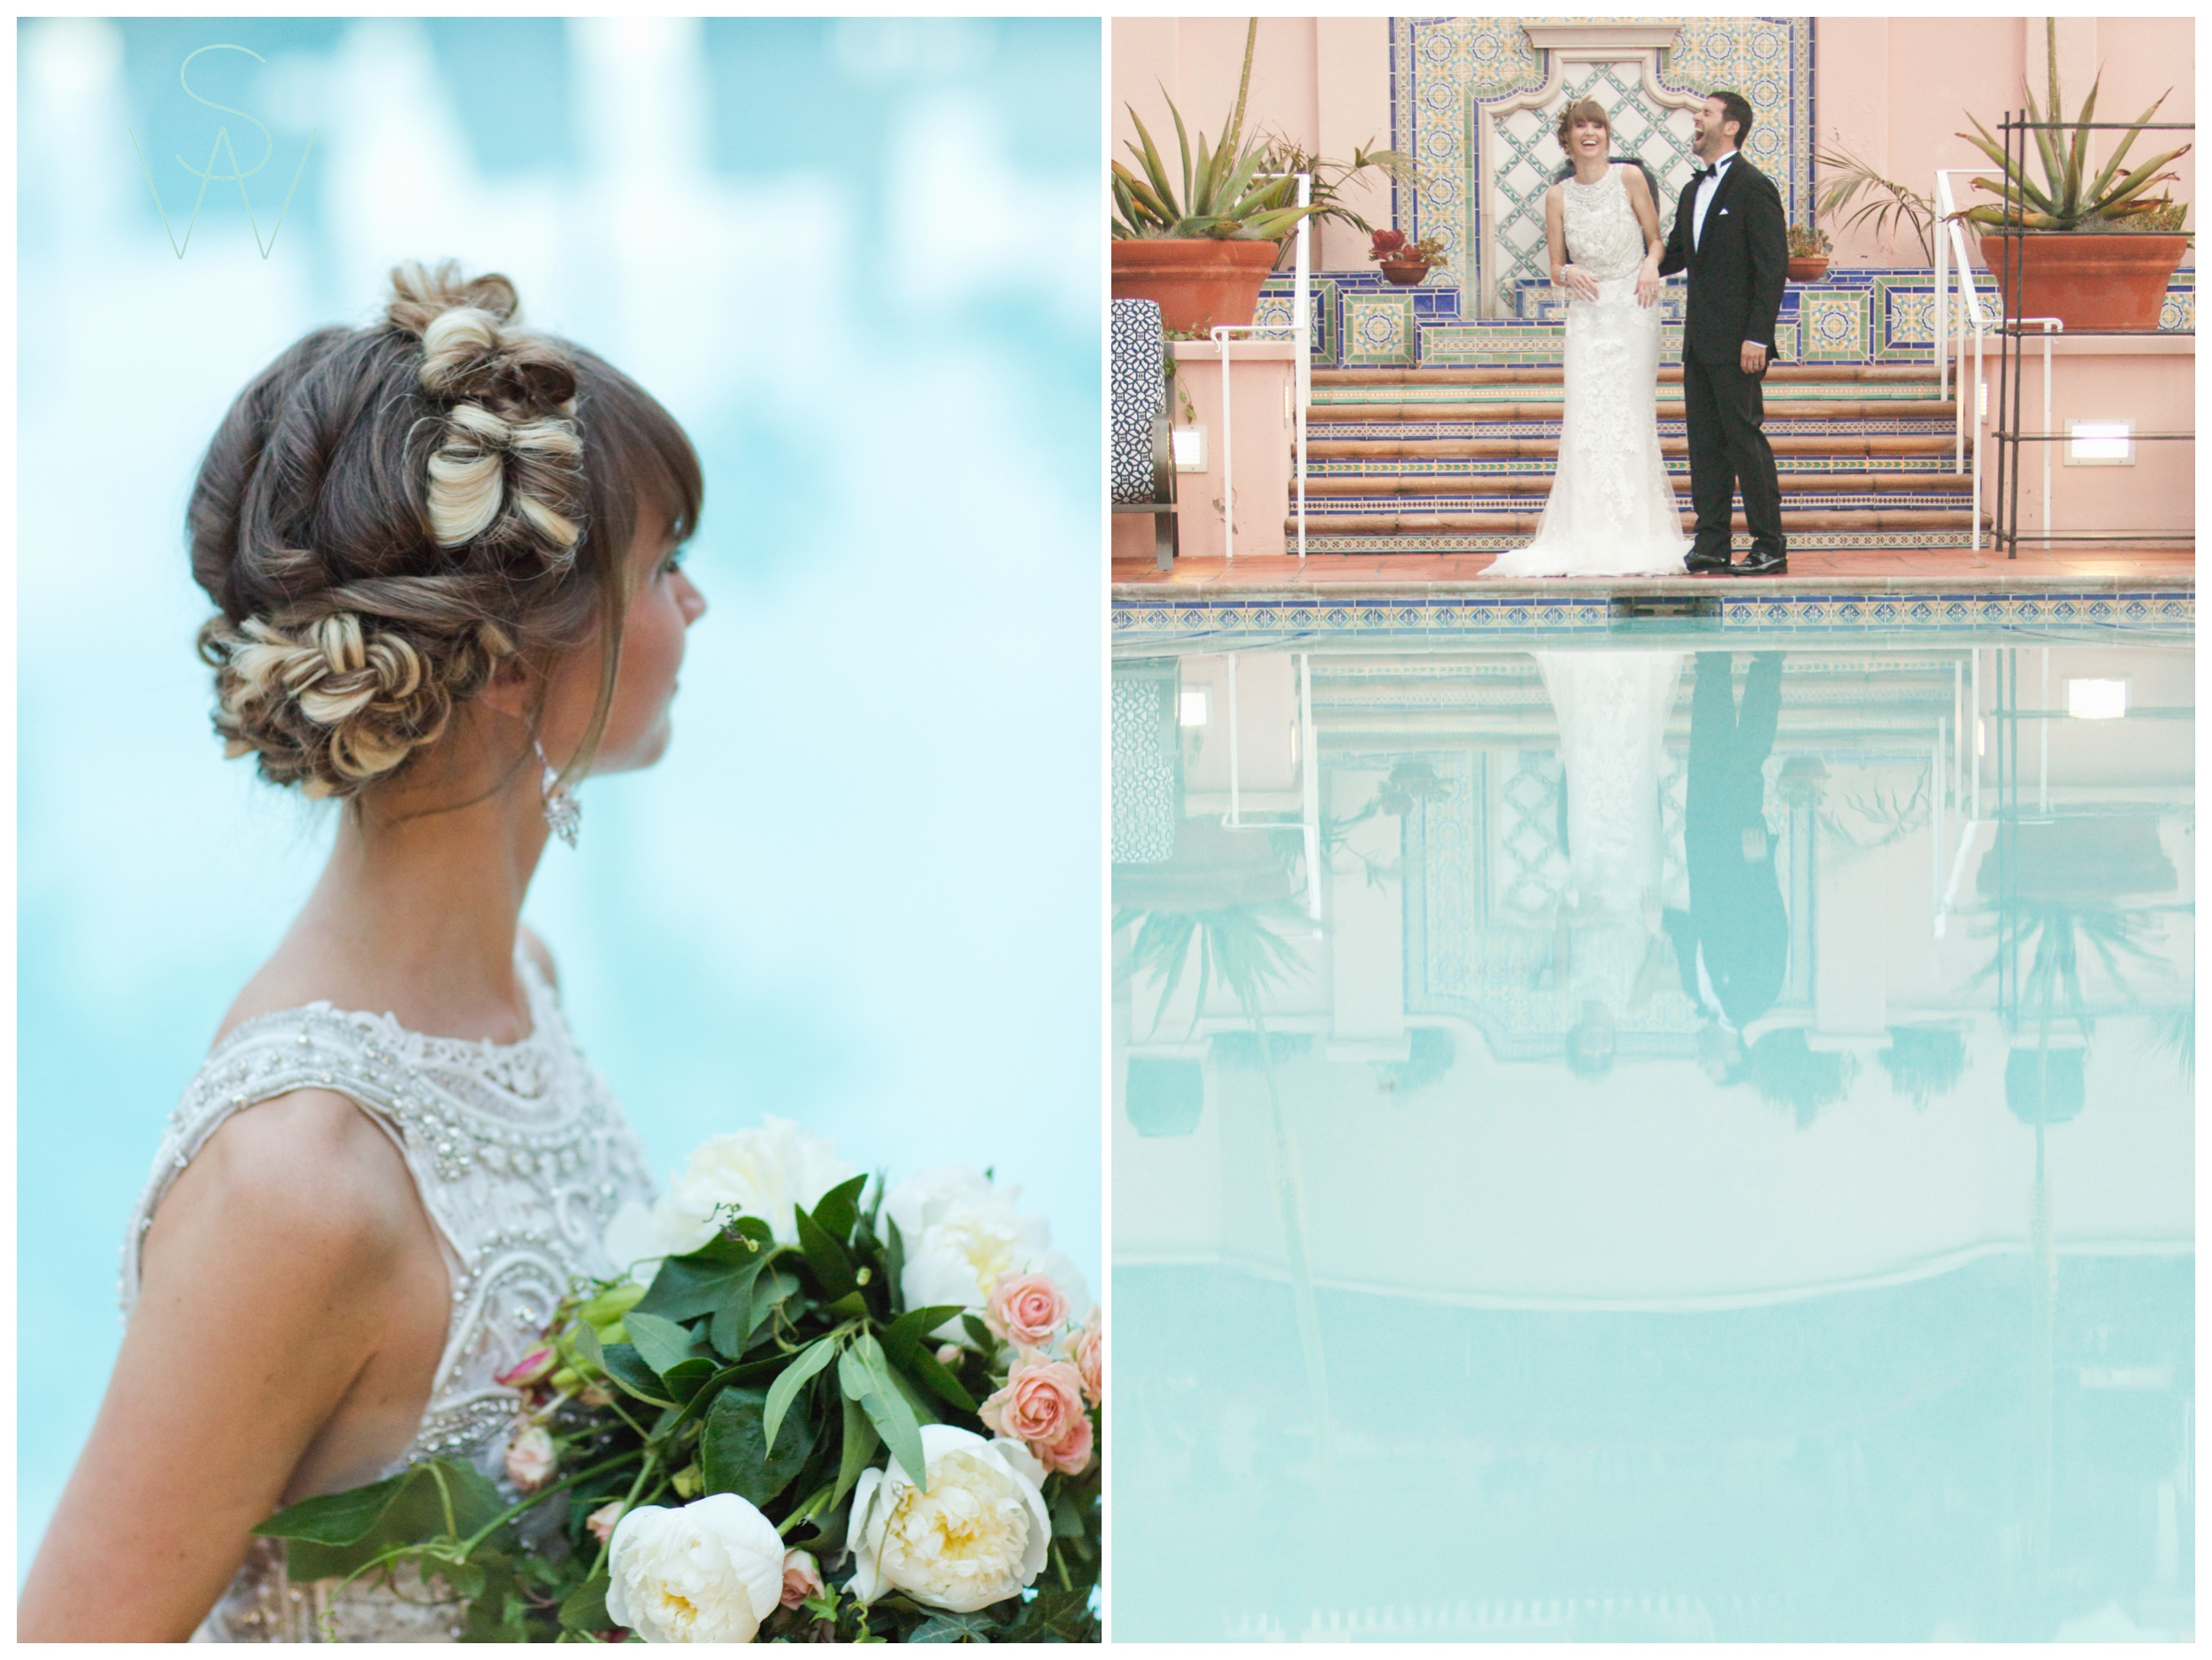 shewanders.wedding.photography.la_.jolla173.jpg.photography.la_.jolla173.jpg